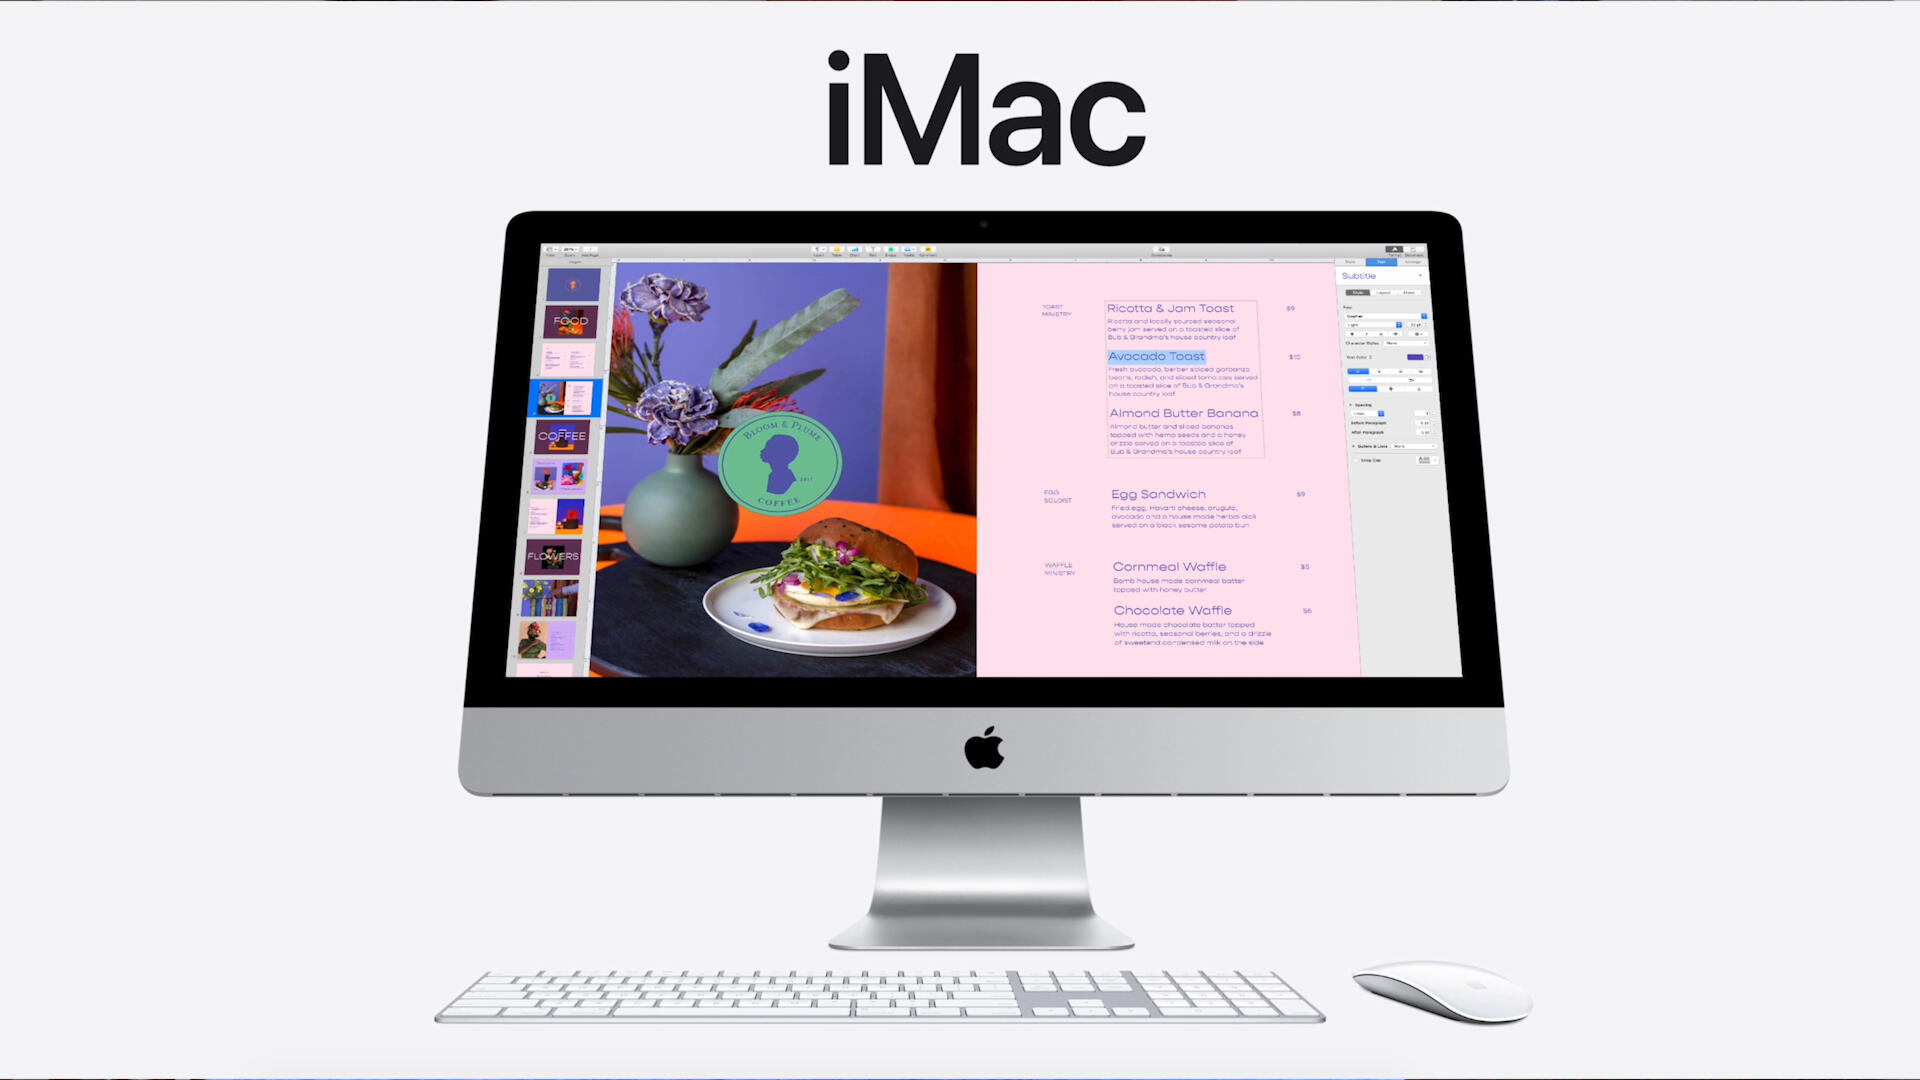 Video: Apple gives the 27-inch iMac a major revamp